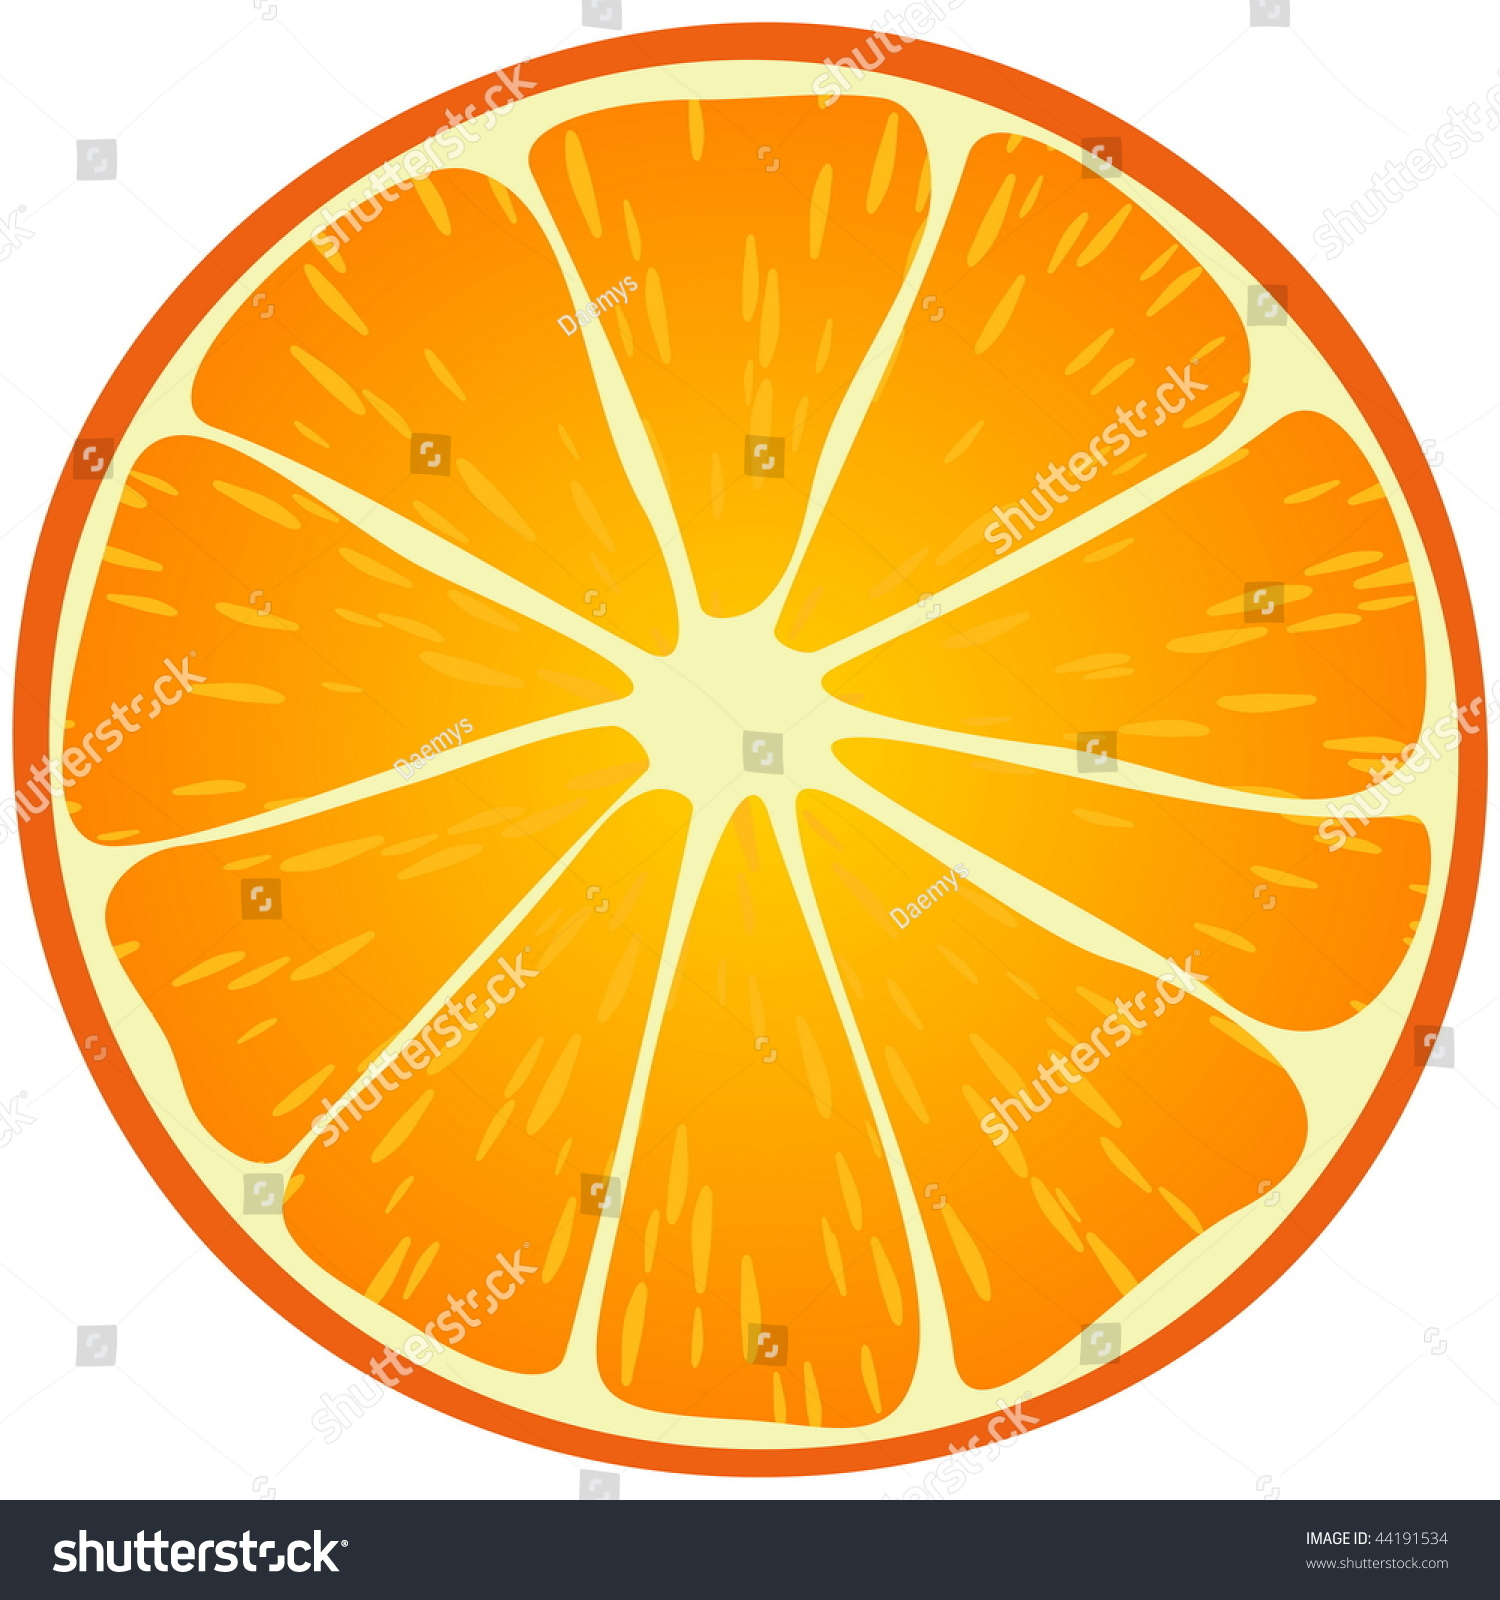 Orange Slice Stock Vector Illustration 44191534 : Shutterstock